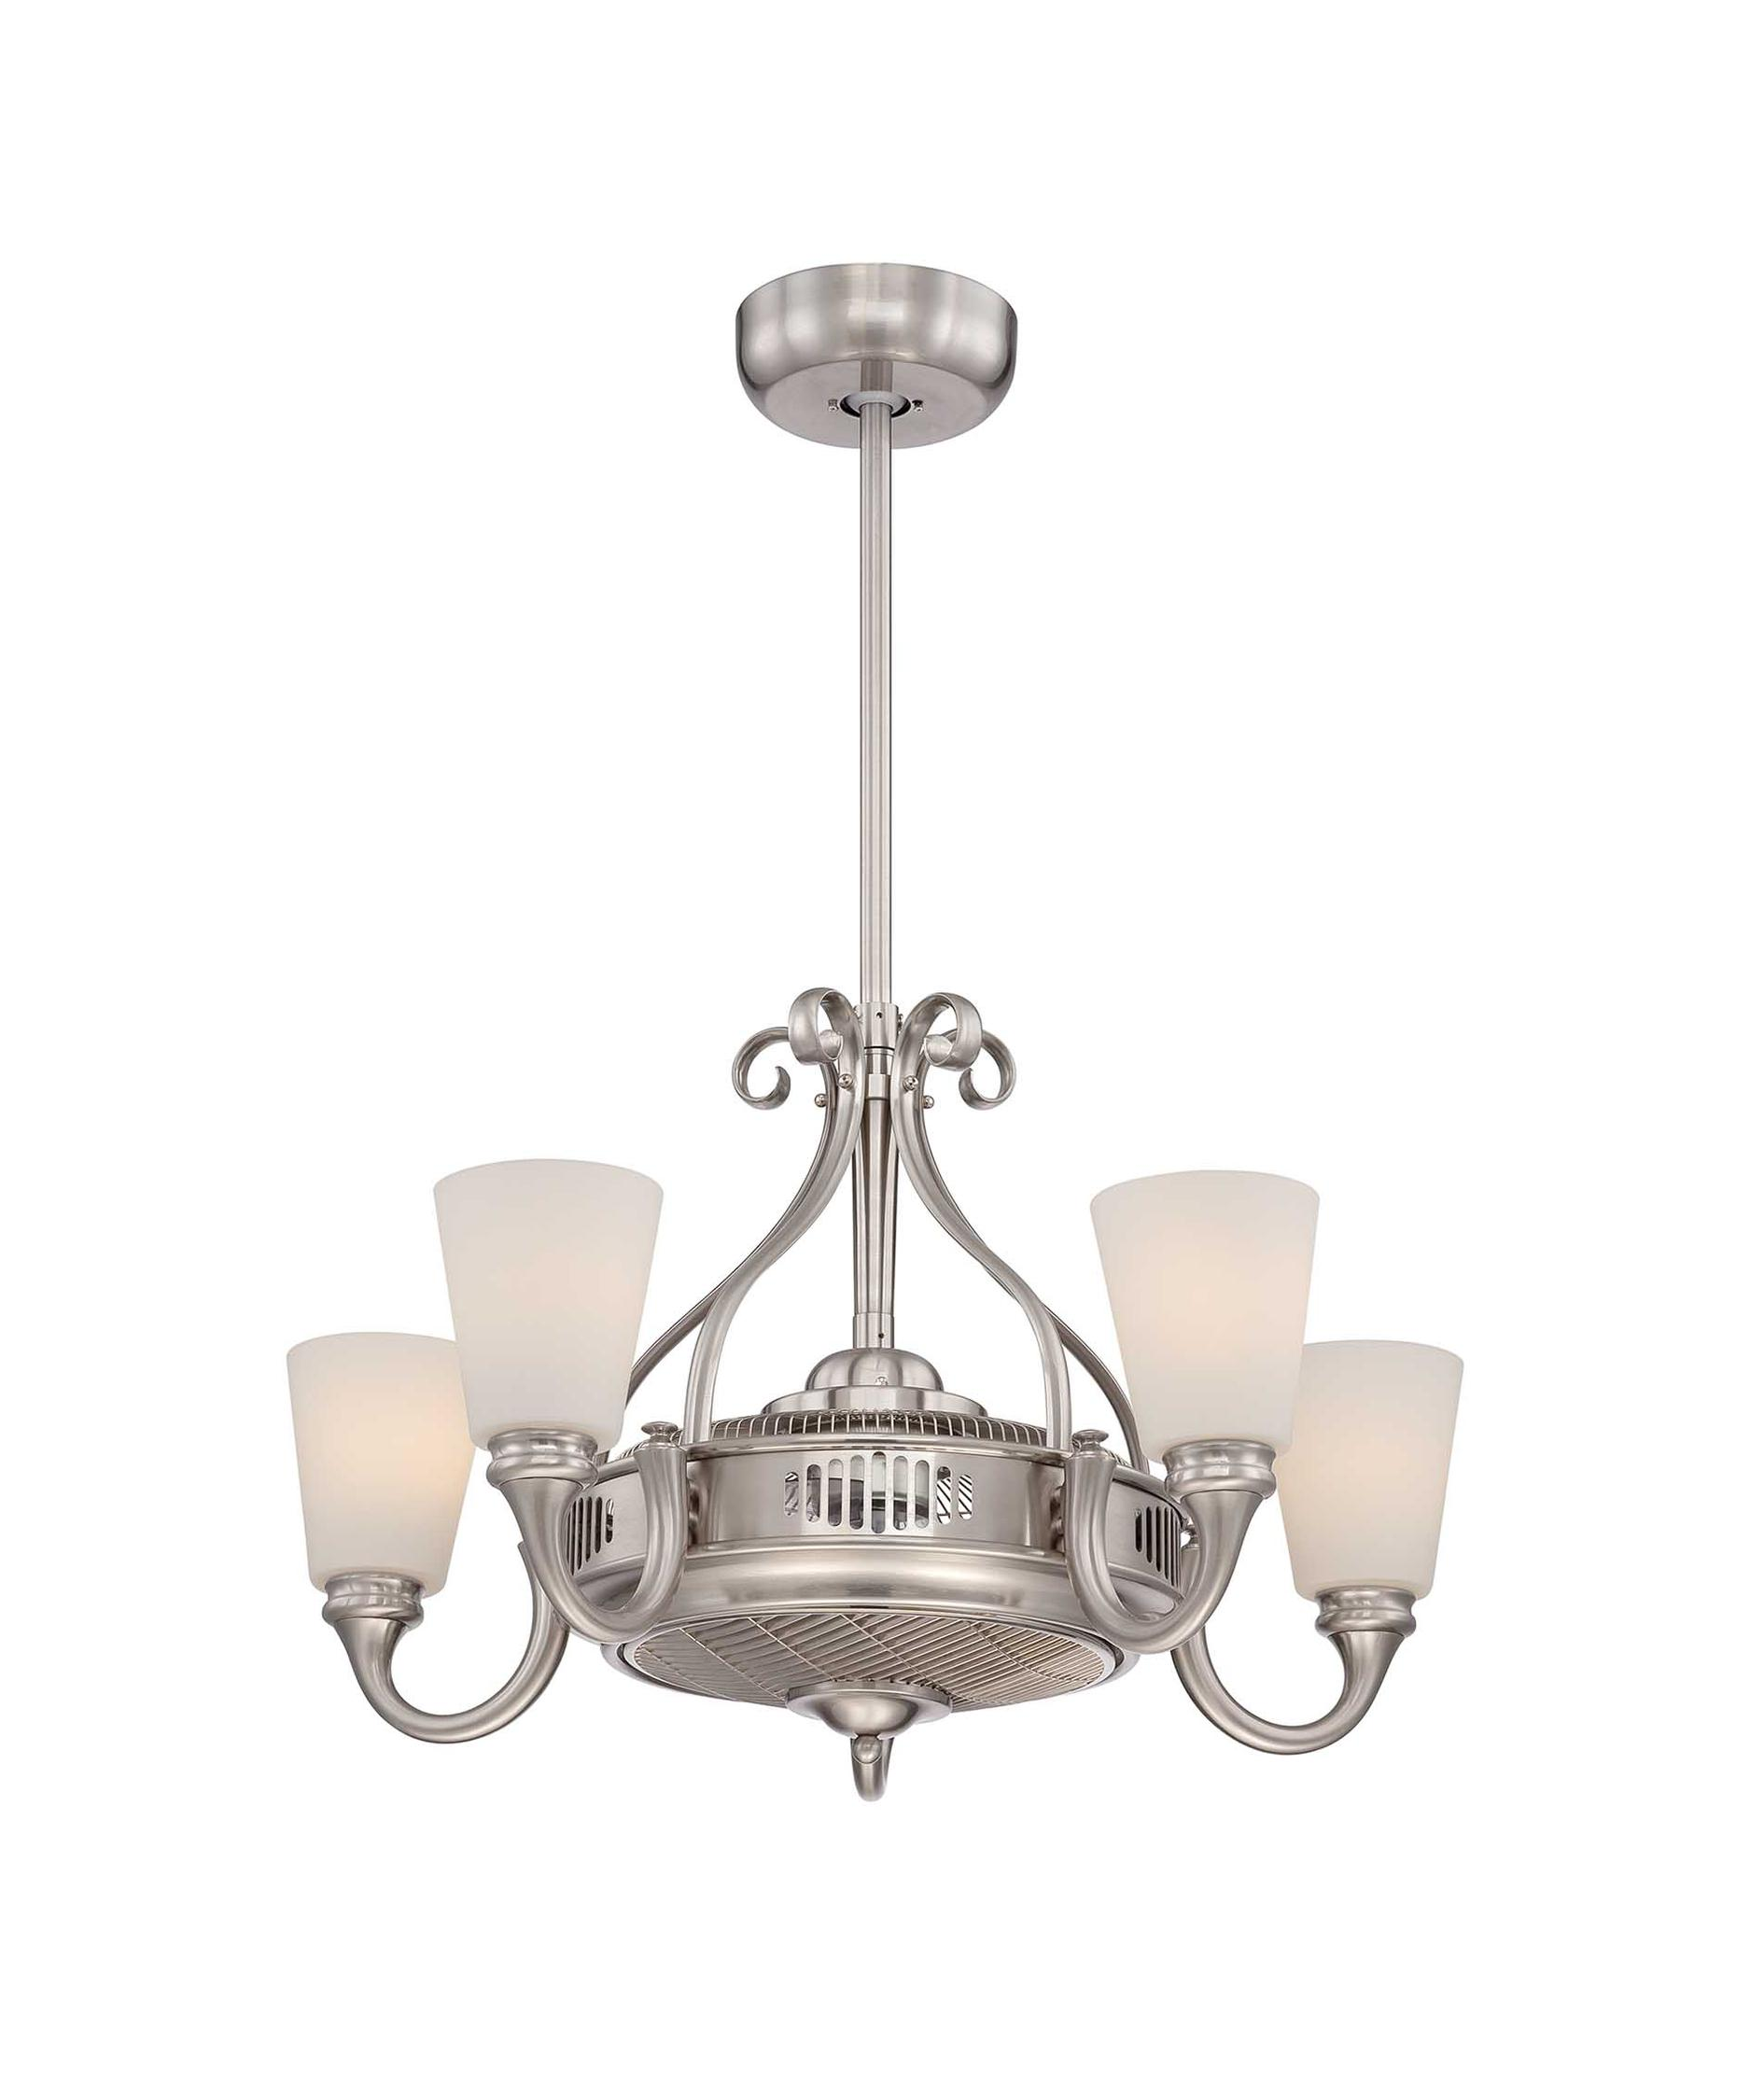 Savoy House Borea 32 Inch Chandelier Ceiling Fan | Capitol ...:Savoy House Borea 32 Inch Chandelier Ceiling Fan | Capitol Lighting  1-800lighting.com,Lighting